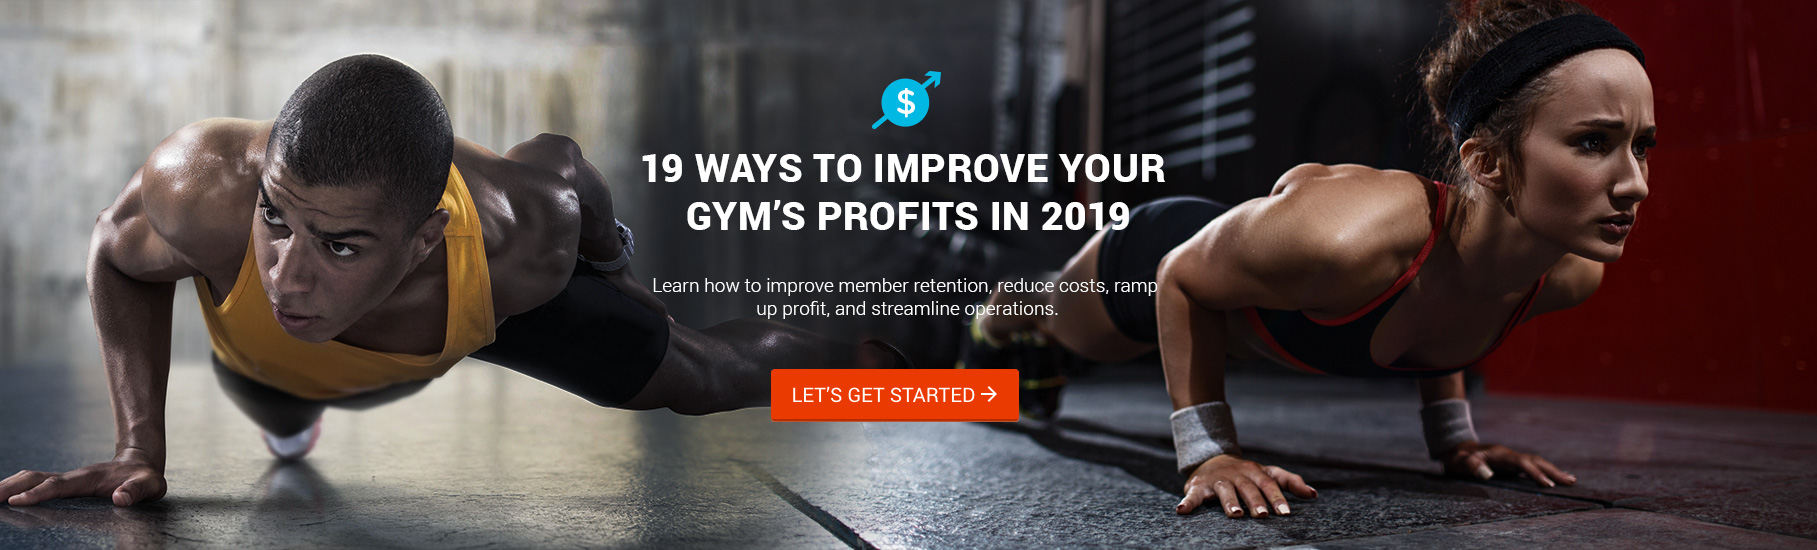 19 Ways to Improve Your Gym's Profits in 2019